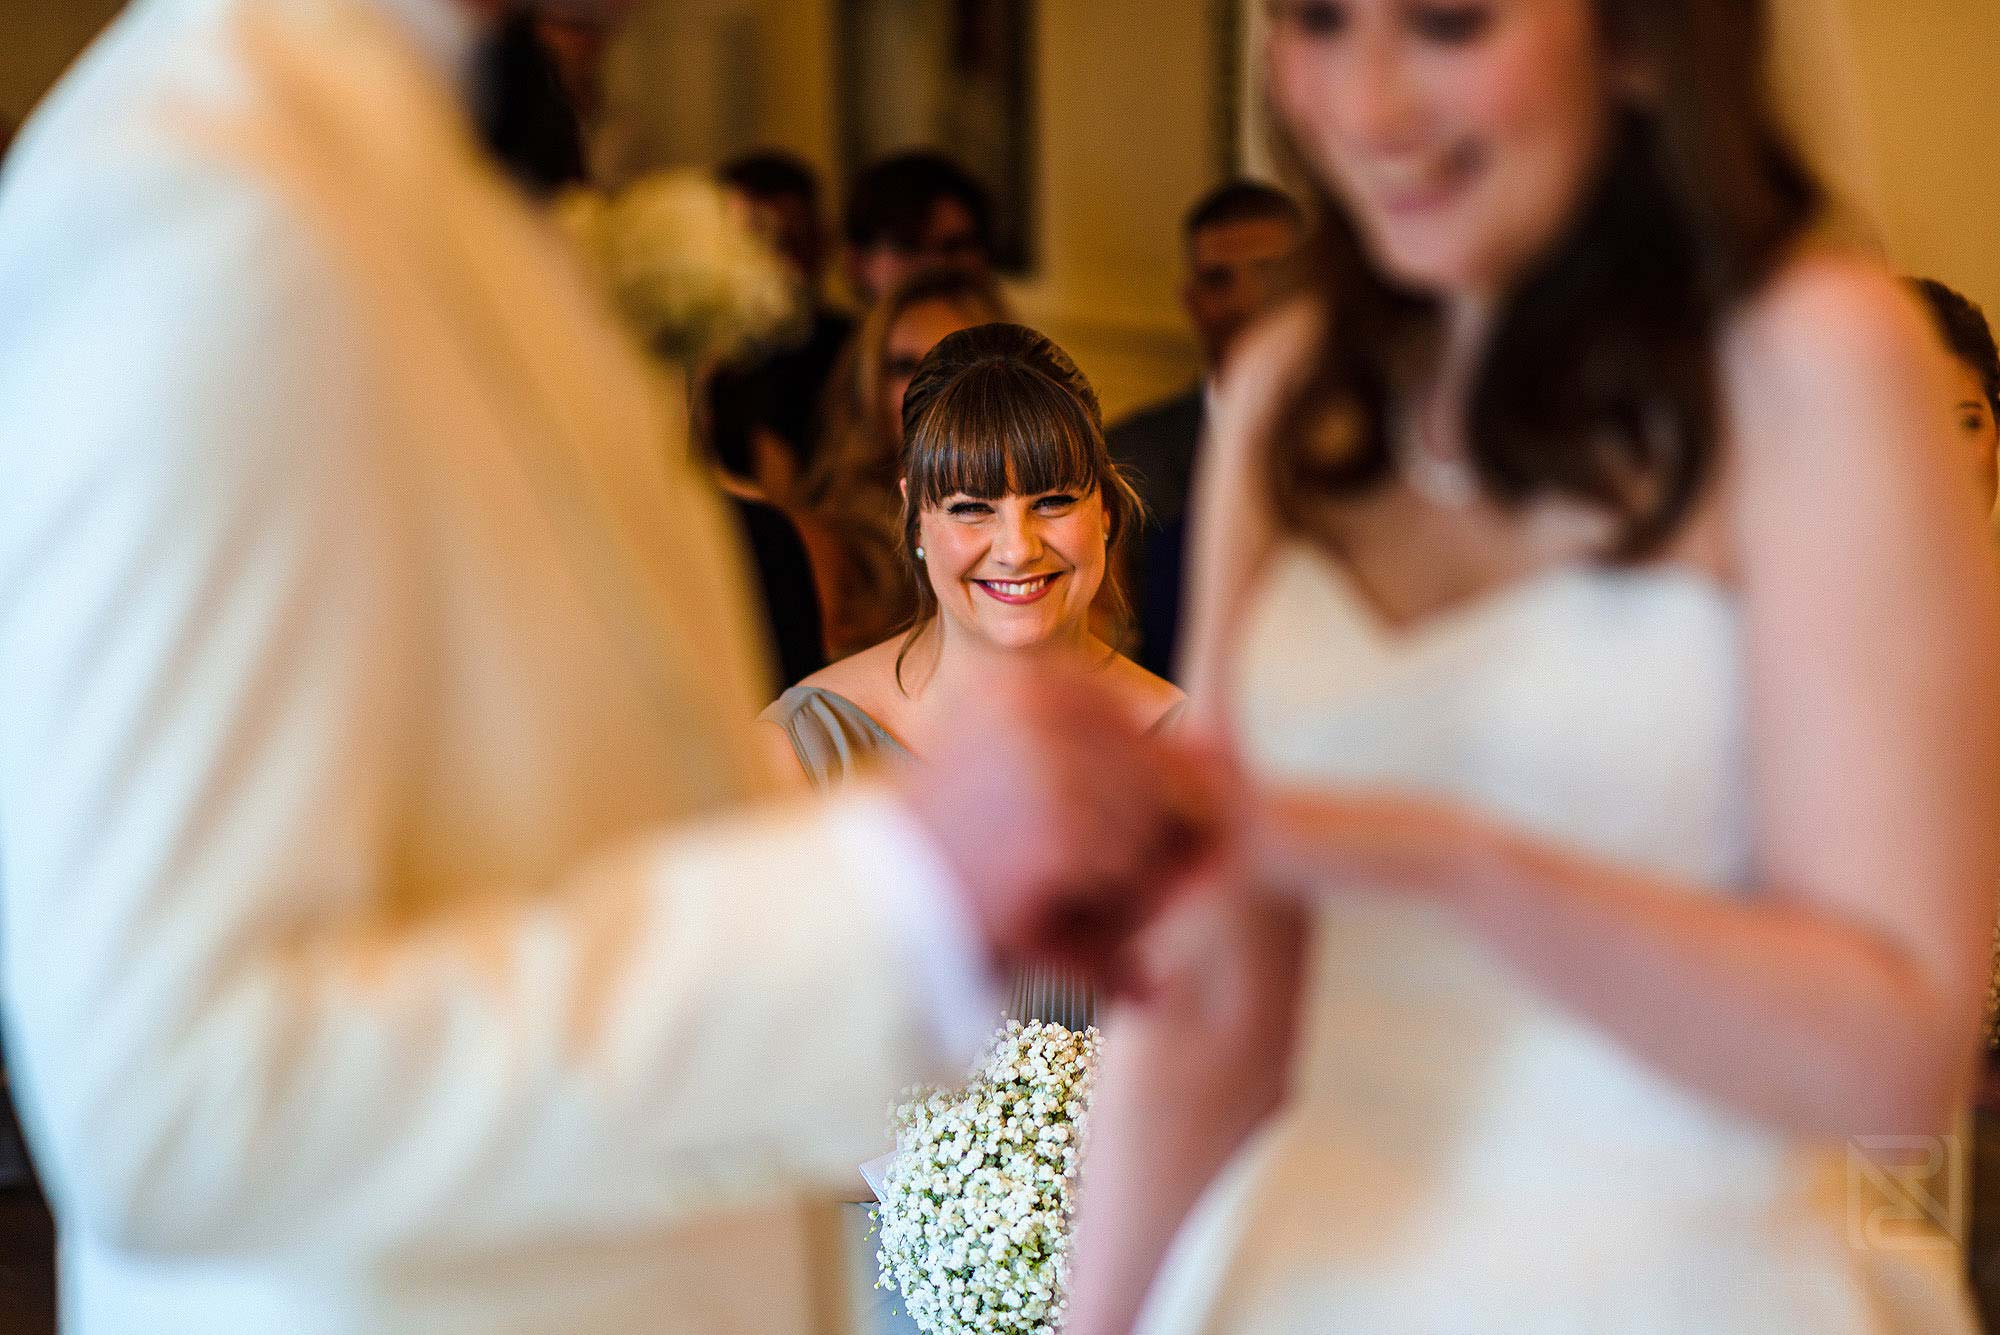 bridesmaid smiling as bride and groom exchange wedding rings